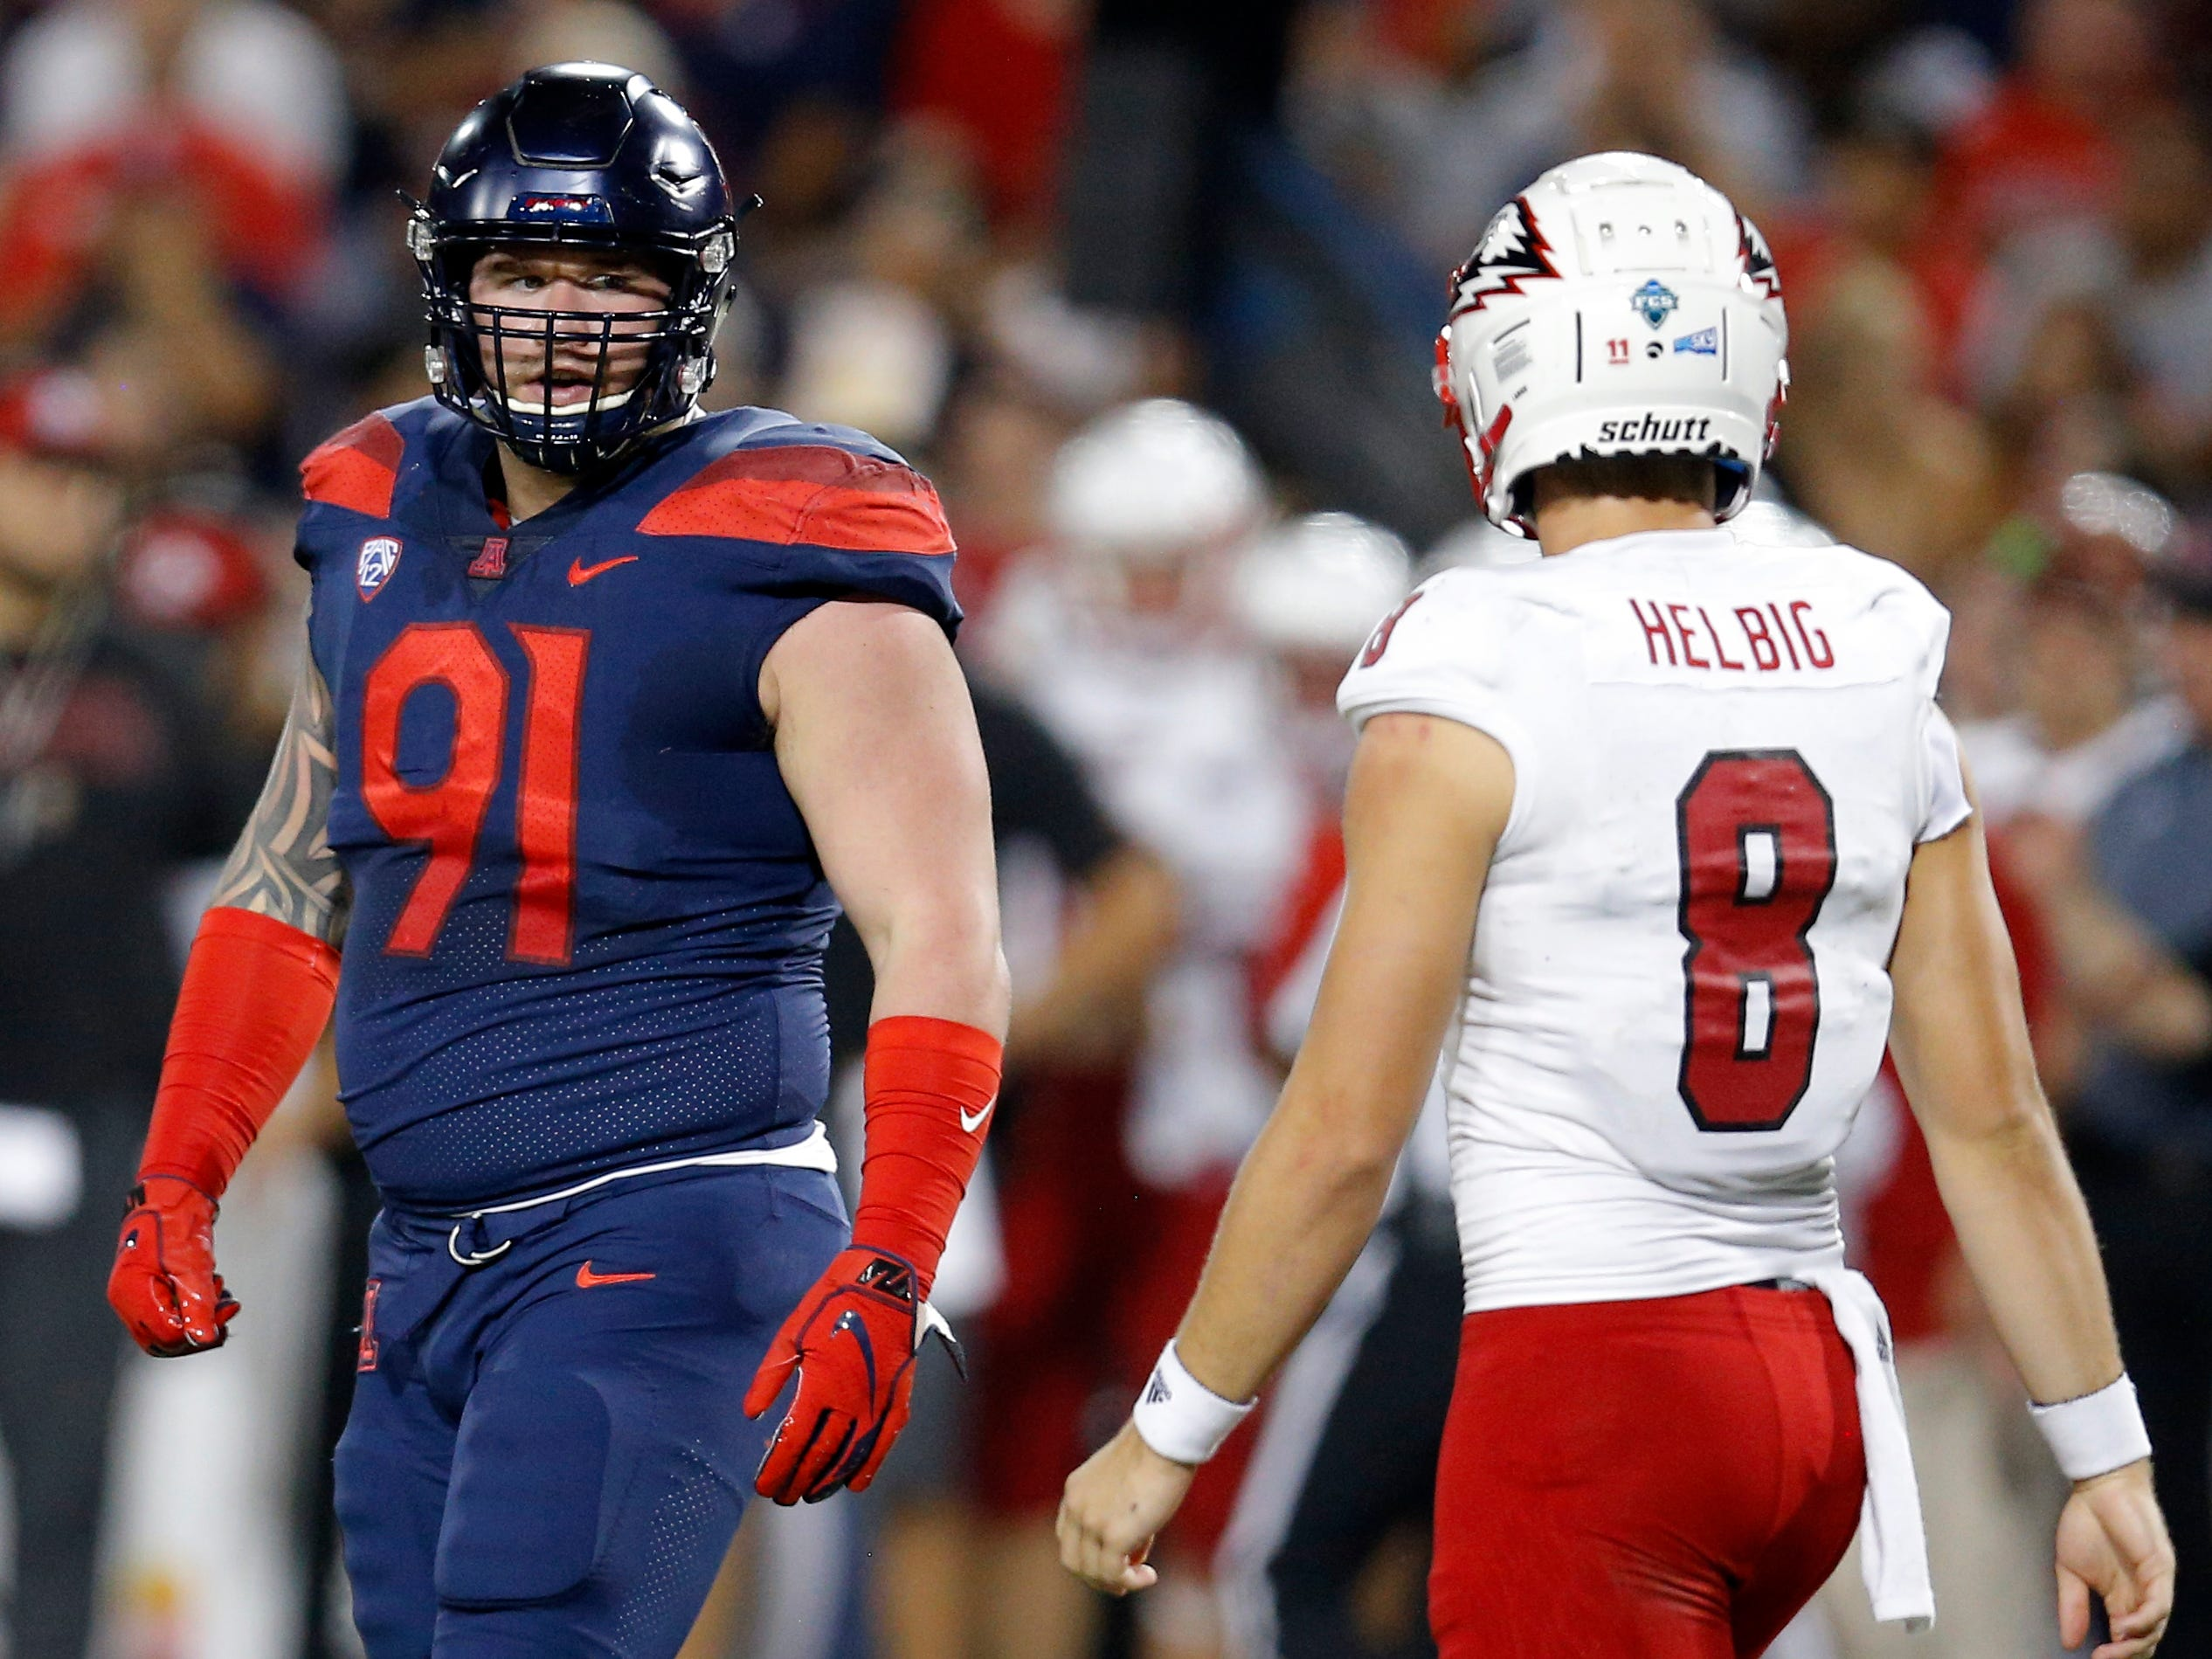 Arizona defensive tackle Finton Connolly (91) in the first half during an NCAA college football game against Southern Utah, Saturday, Sept. 15, 2018, in Tucson, Ariz. (AP Photo/Rick Scuteri)